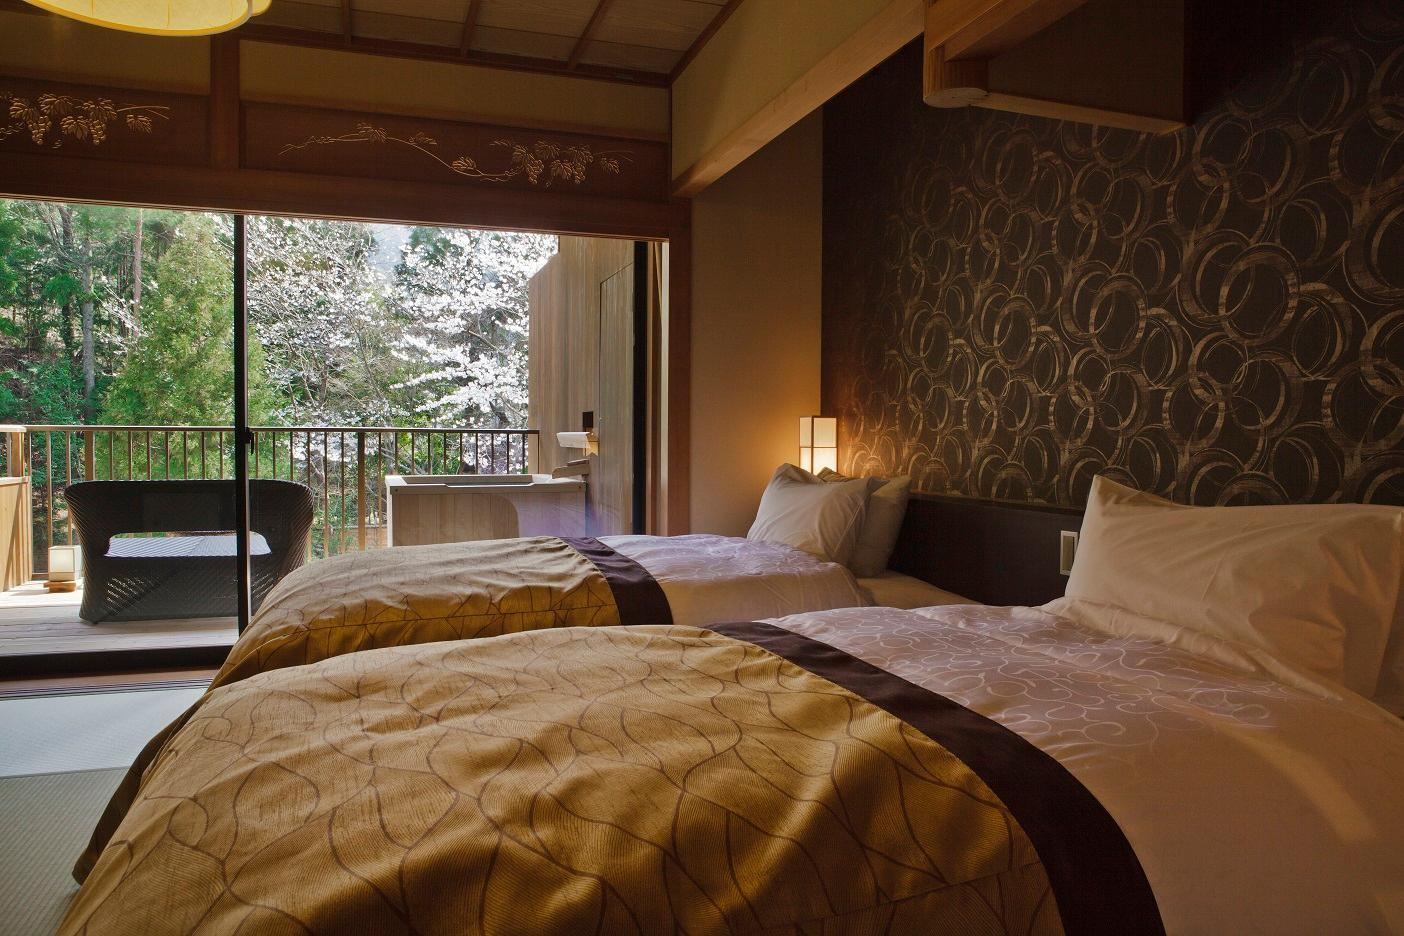 Zweibettzimmer im japanischen Stil mit eigenem Bad im Freien – nur für Erwachsene (Japanese Style Twin Room with Private Open-Air Bath - Adult Only)